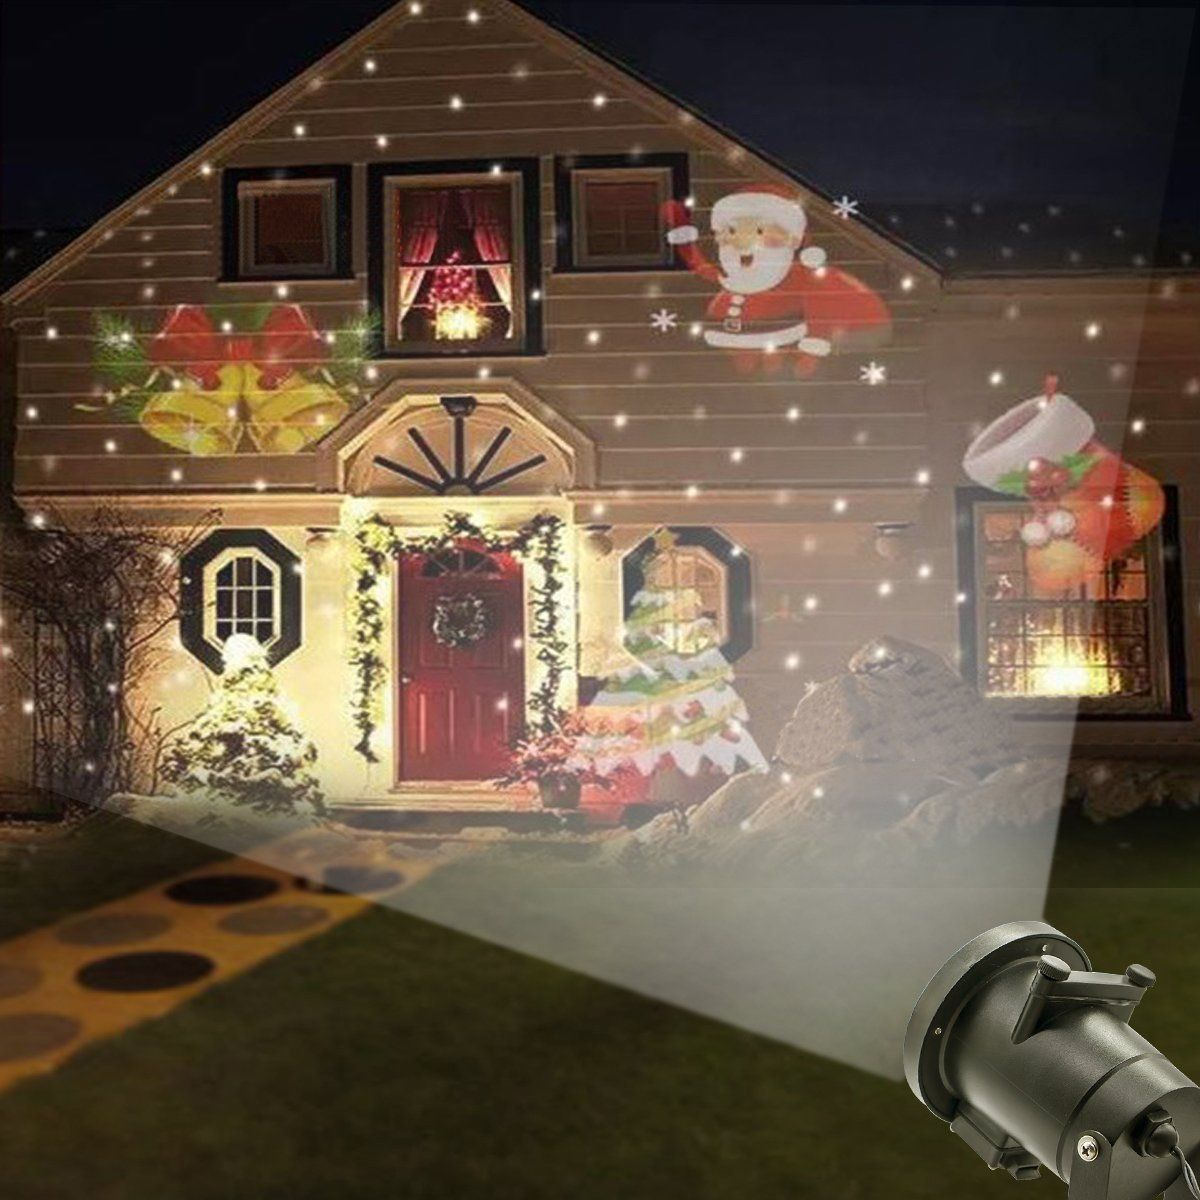 Riipoo LED Projector Lights Christmas Halloween Projector